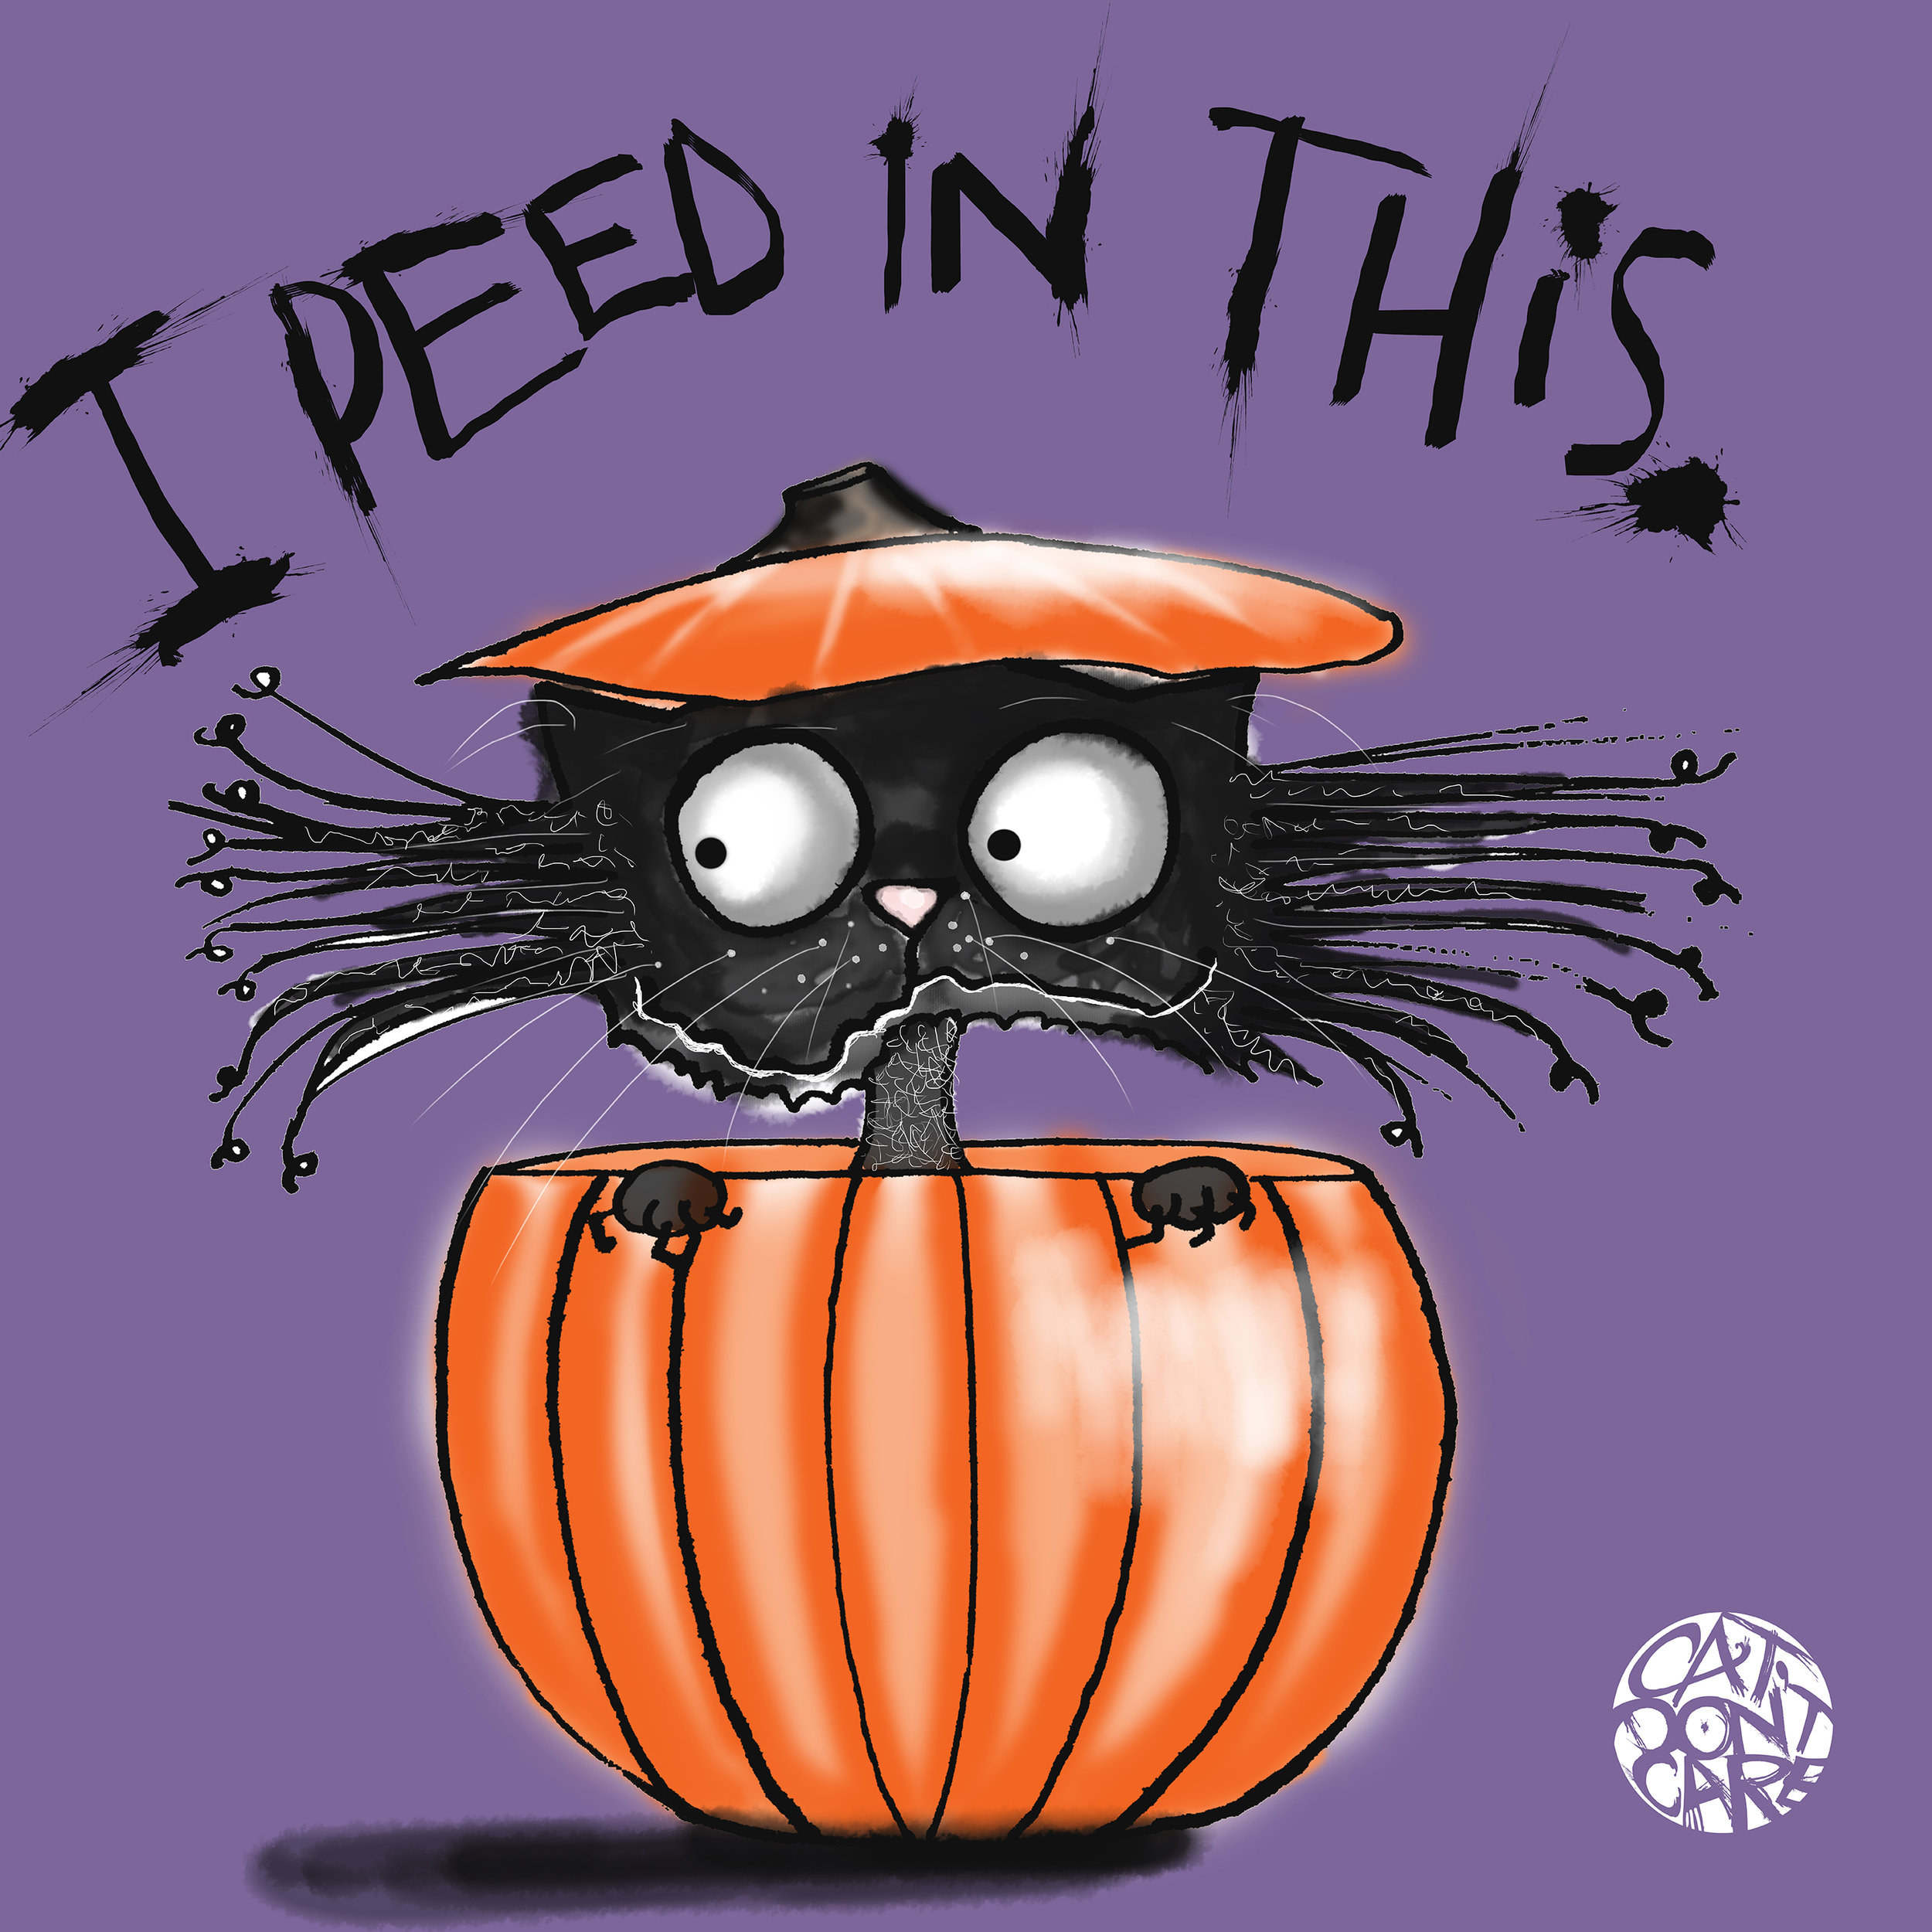 CAT DON'T CARE | CAT IN A PUMPKIN | HALLOWEEN | CAT PEE | FUNNY CAT ART | NATALIE PALMER SUTTON ILLUSTRATION